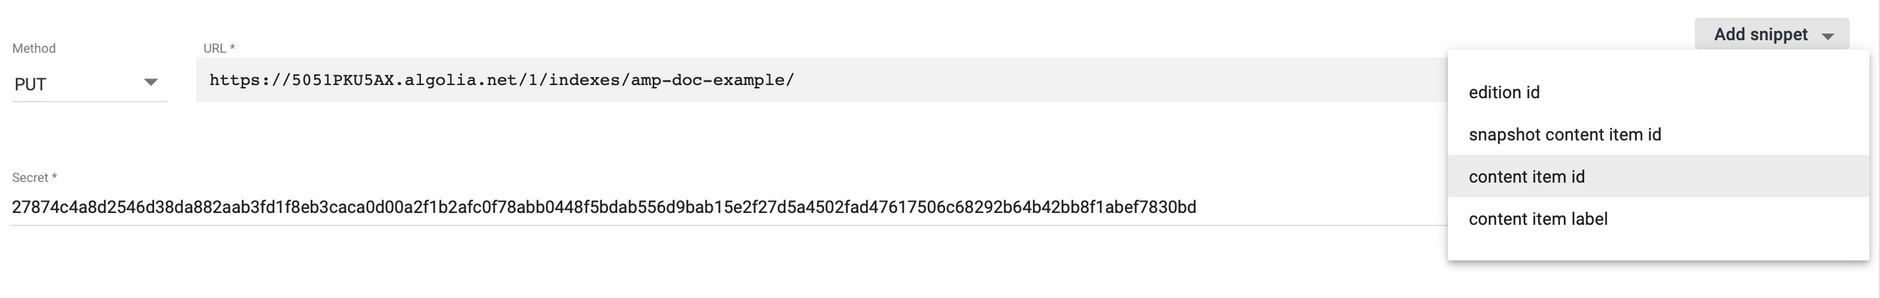 Use the snippets menu to add payload.id to the webhook URL